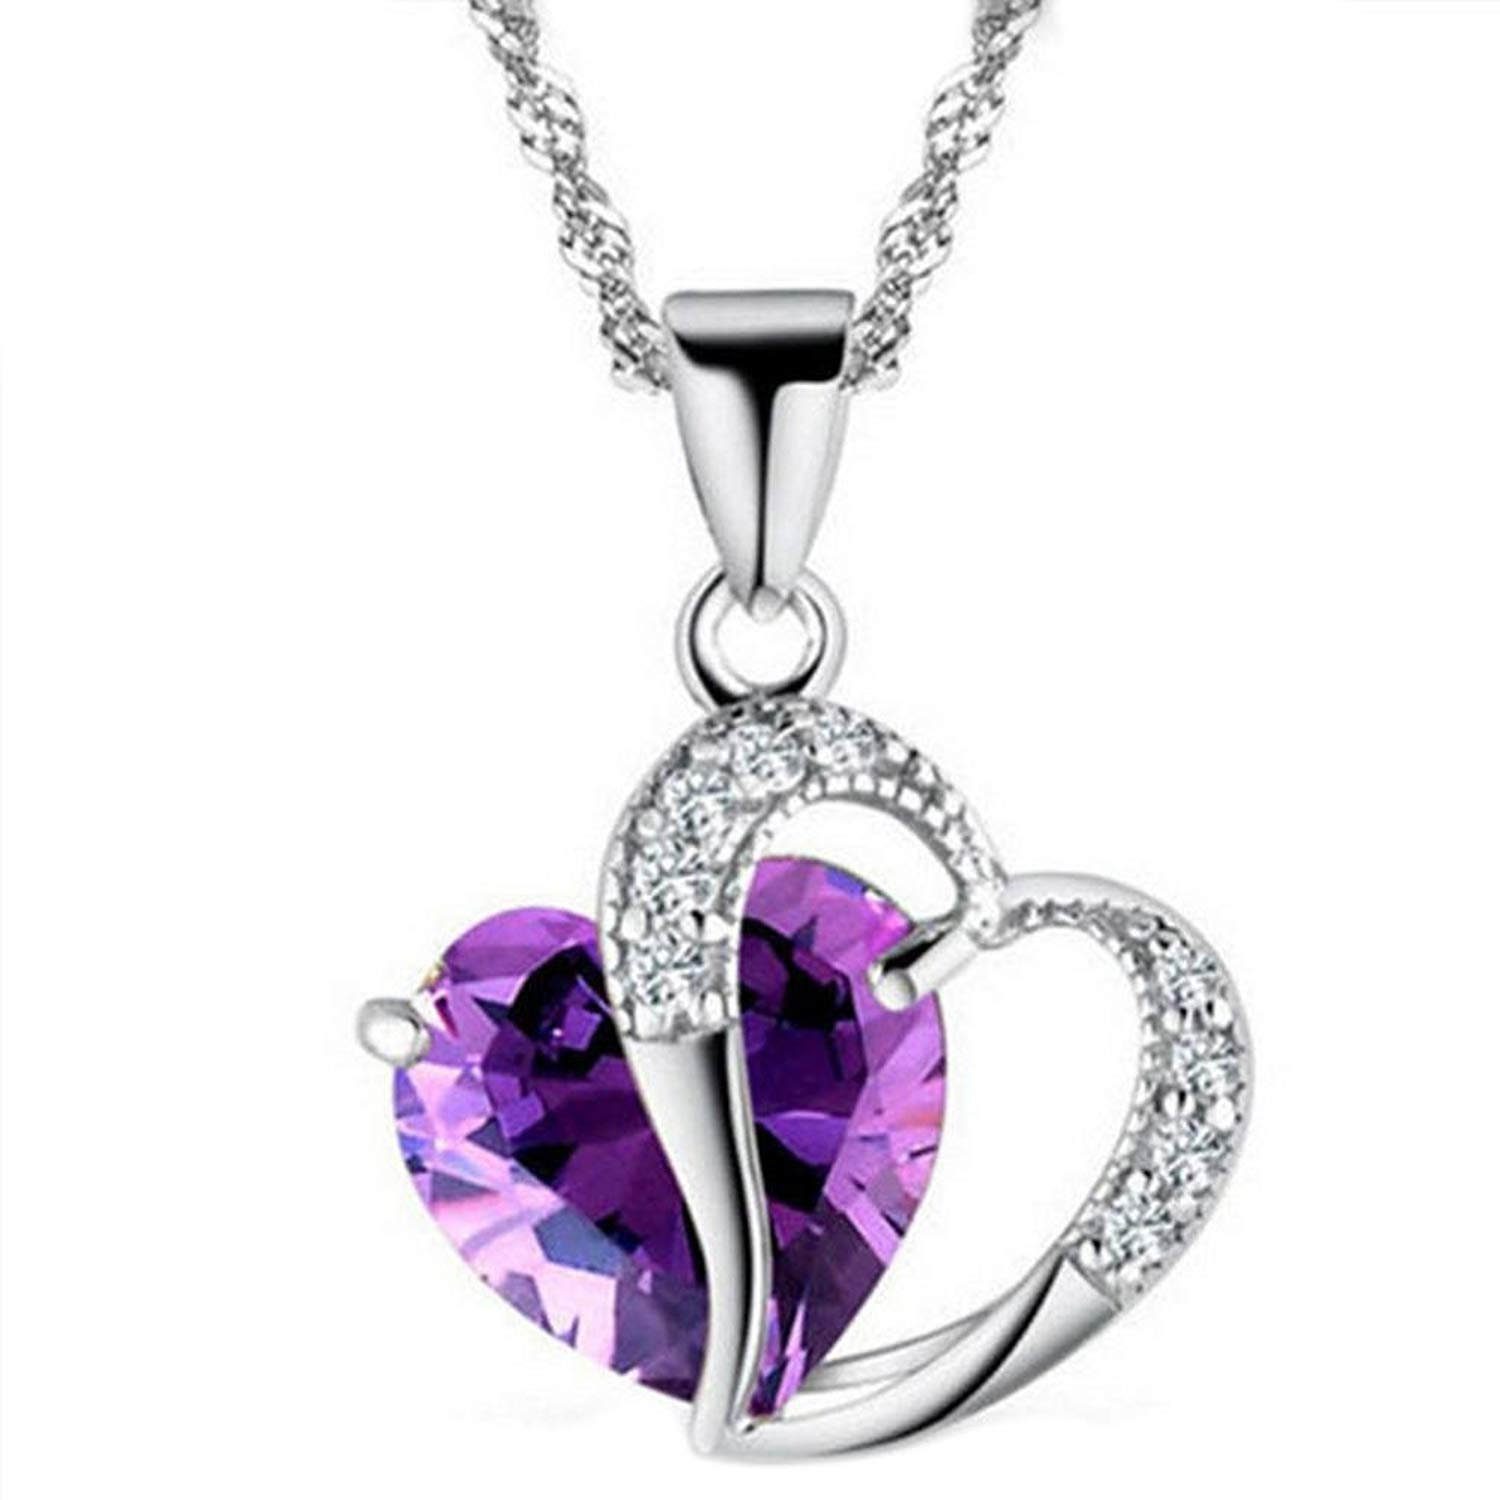 iLH Clearance Deals Fashion Women Heart Crystal Rhinestone Silver Chain Pendant Necklace Jewelry by ZYooh